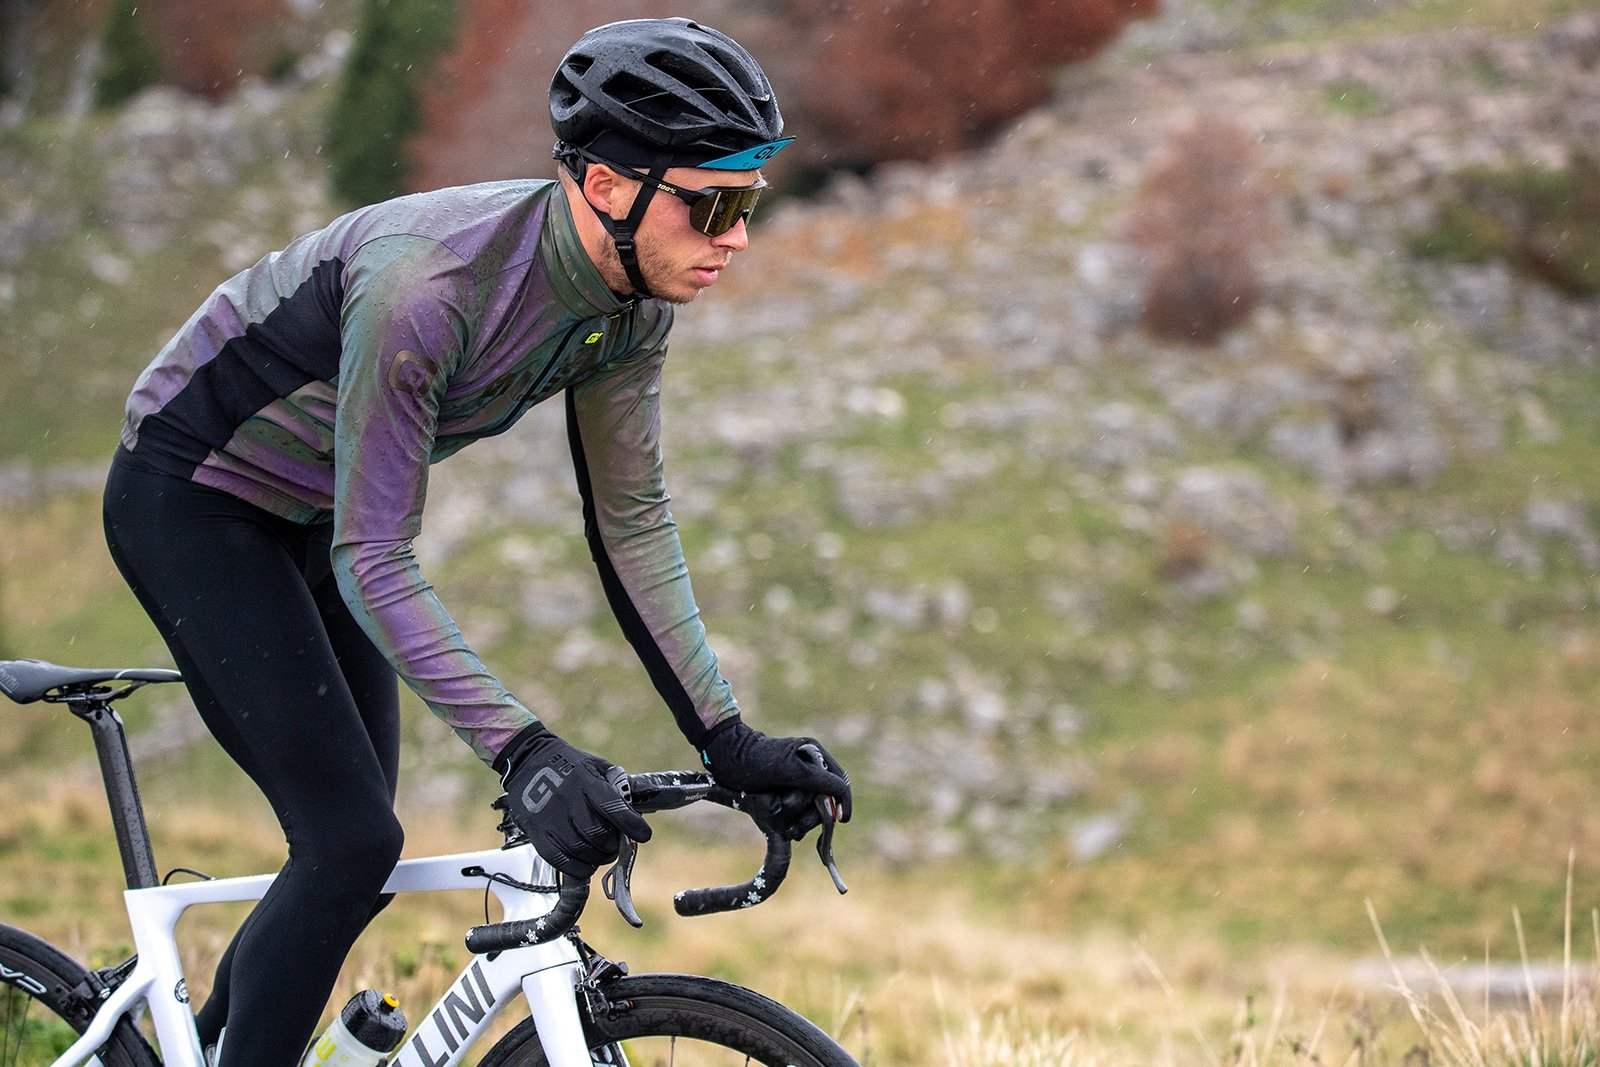 Best Reflective And Hi Vis Cycling Jackets For Winter Riding Cyclist